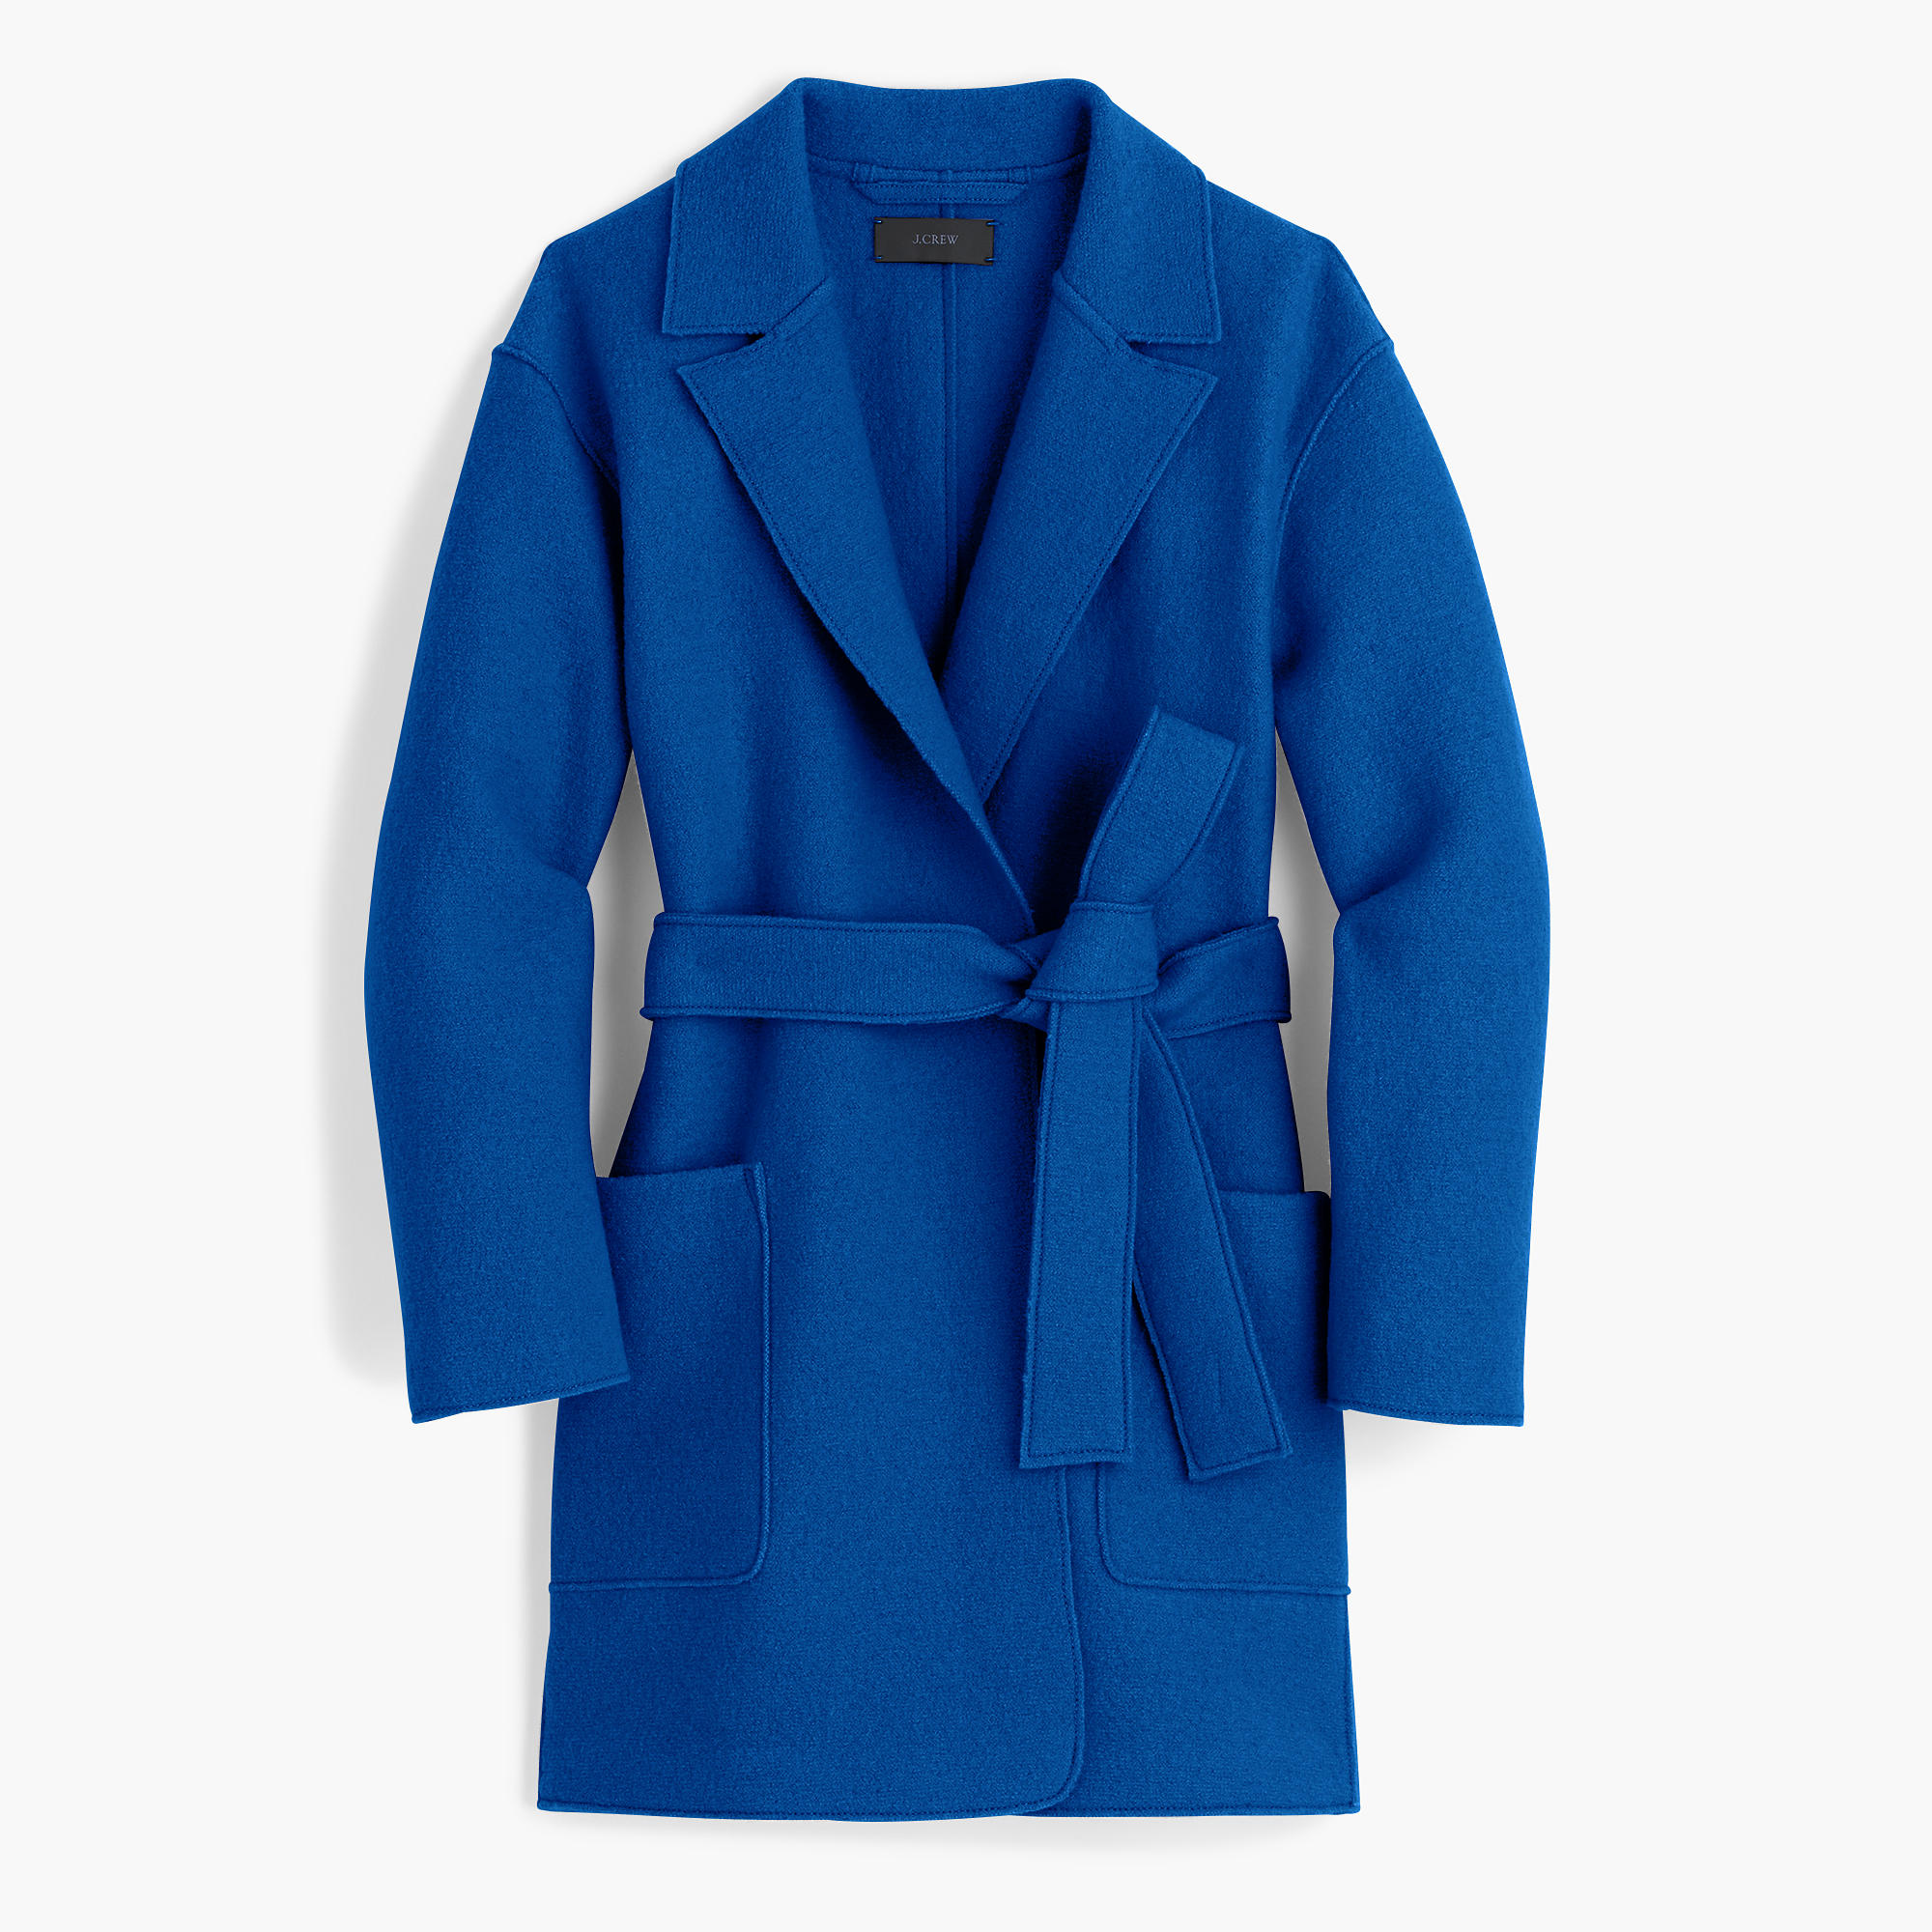 Jcrew Wrap Coat in Boiled Wool